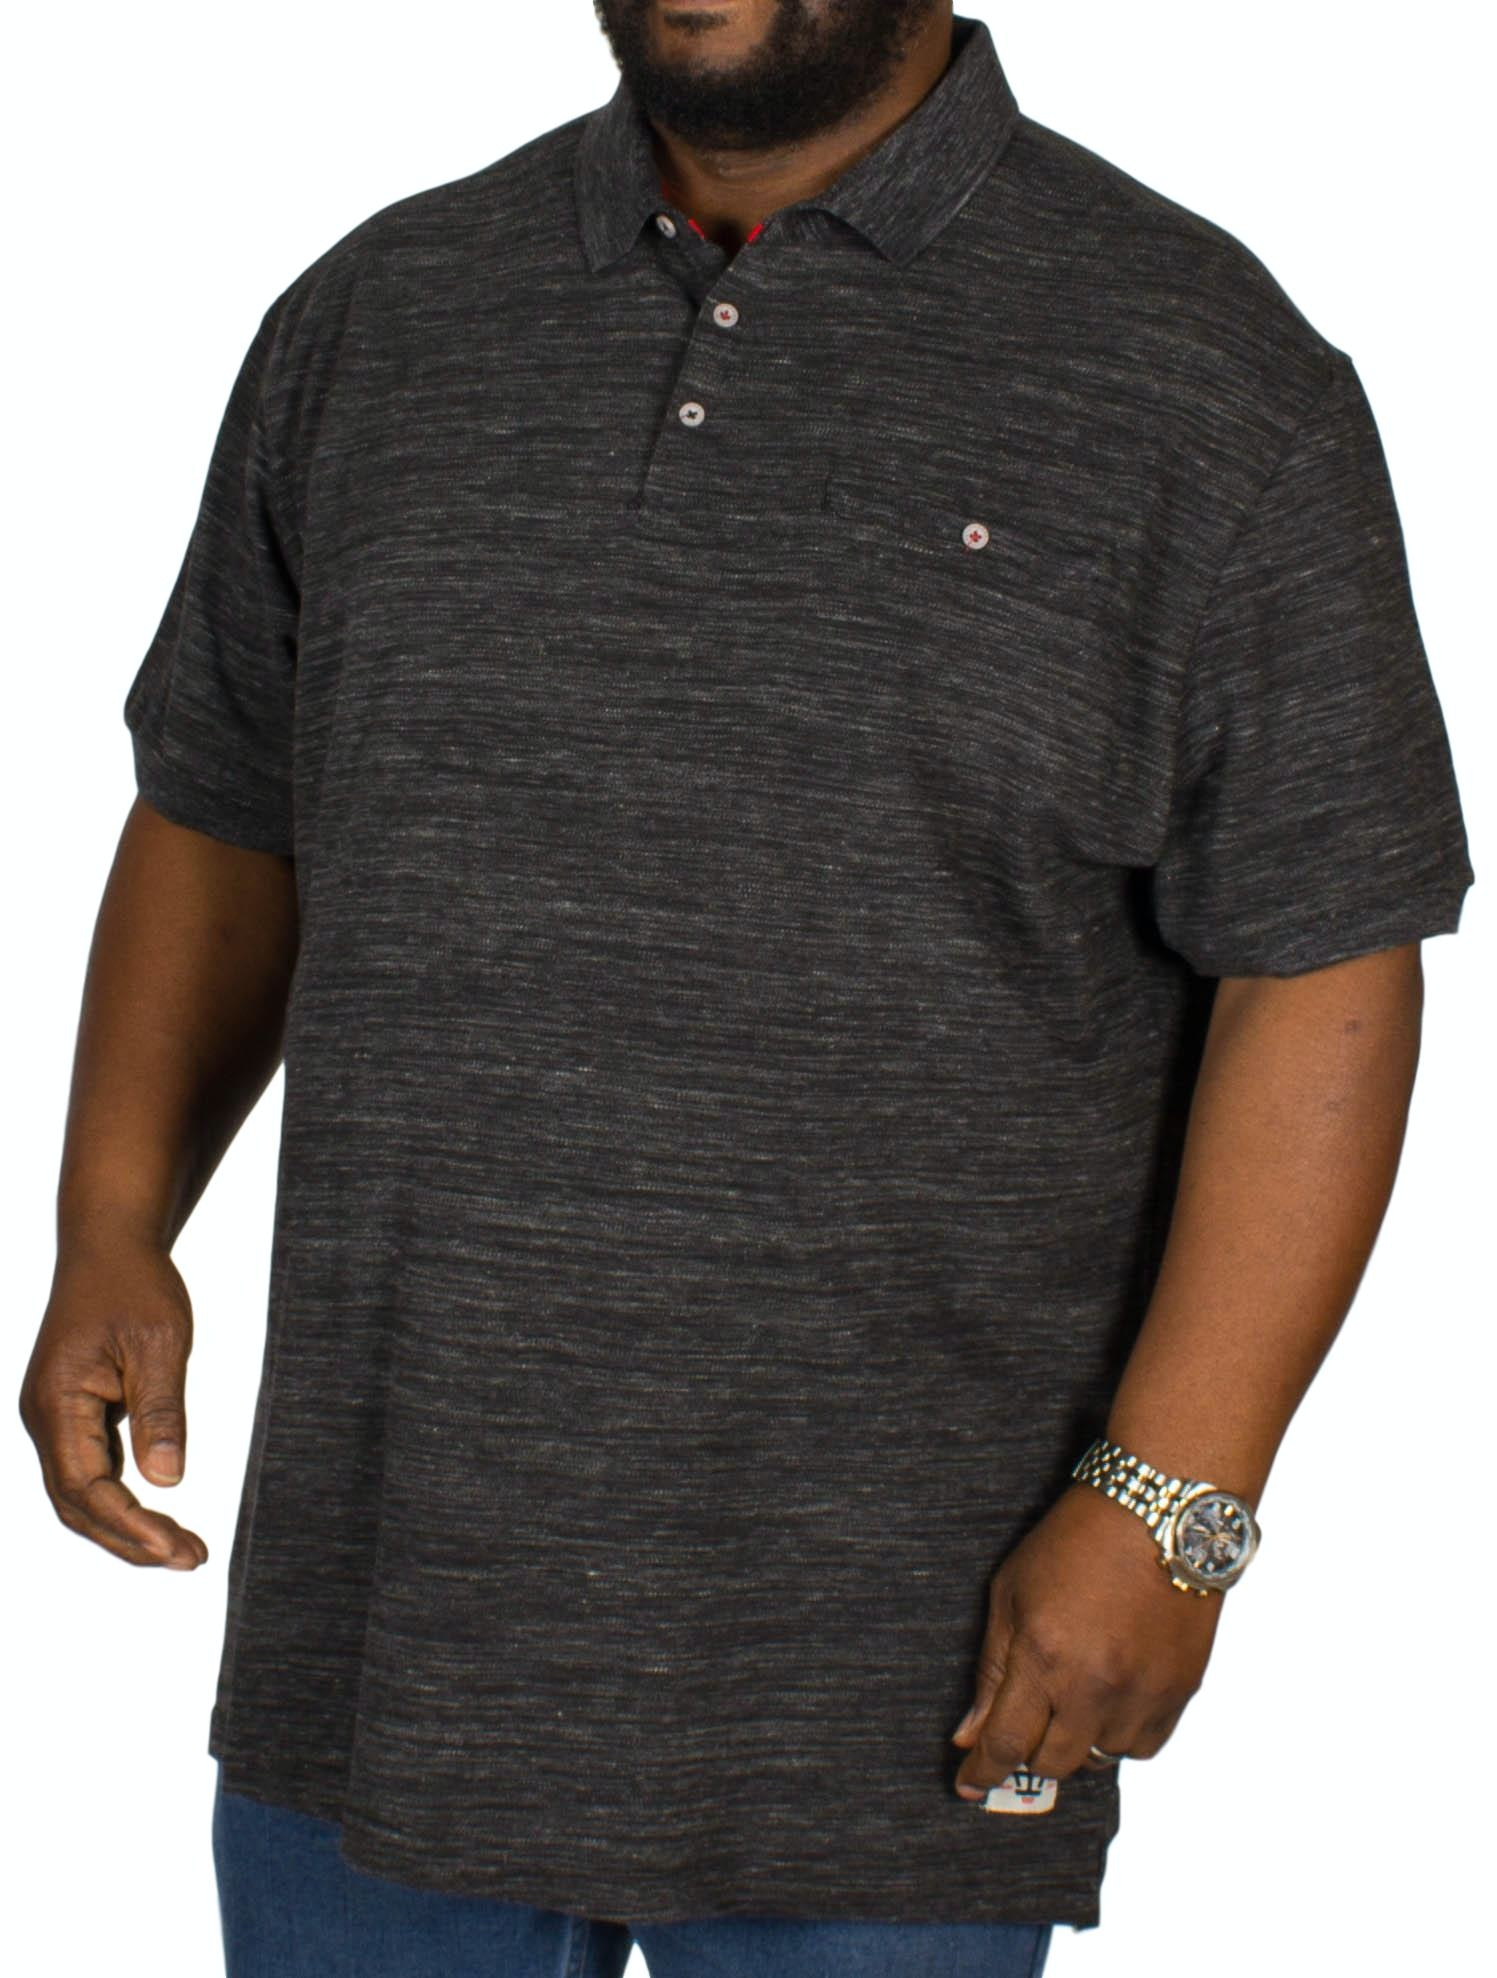 D555 Dunstan Heavy Slub Polo Shirt Black